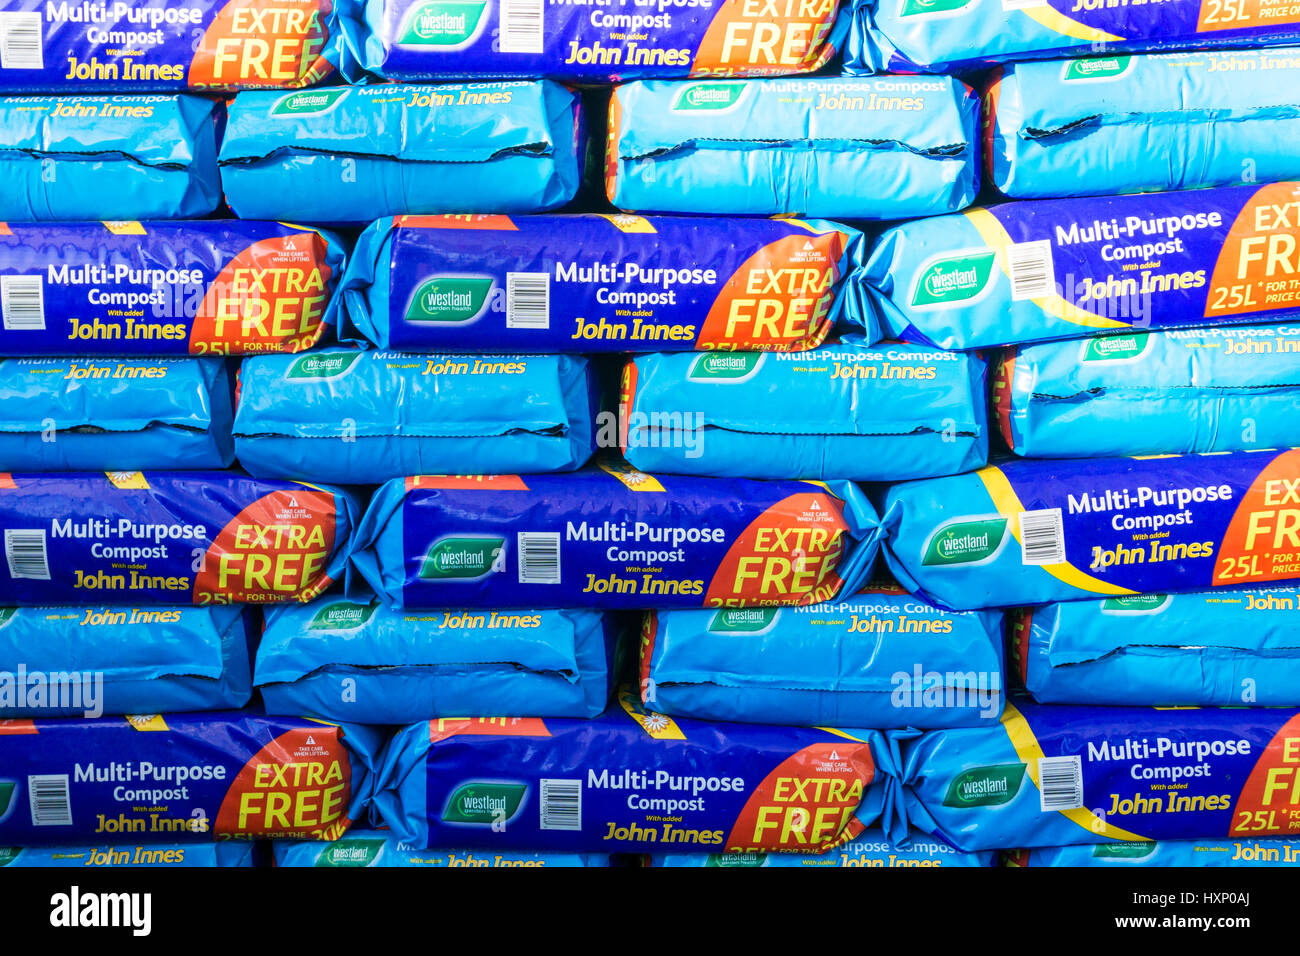 A stack of John Innes Multi-Purpose Compost bags for sale in a garden centre. - Stock Image